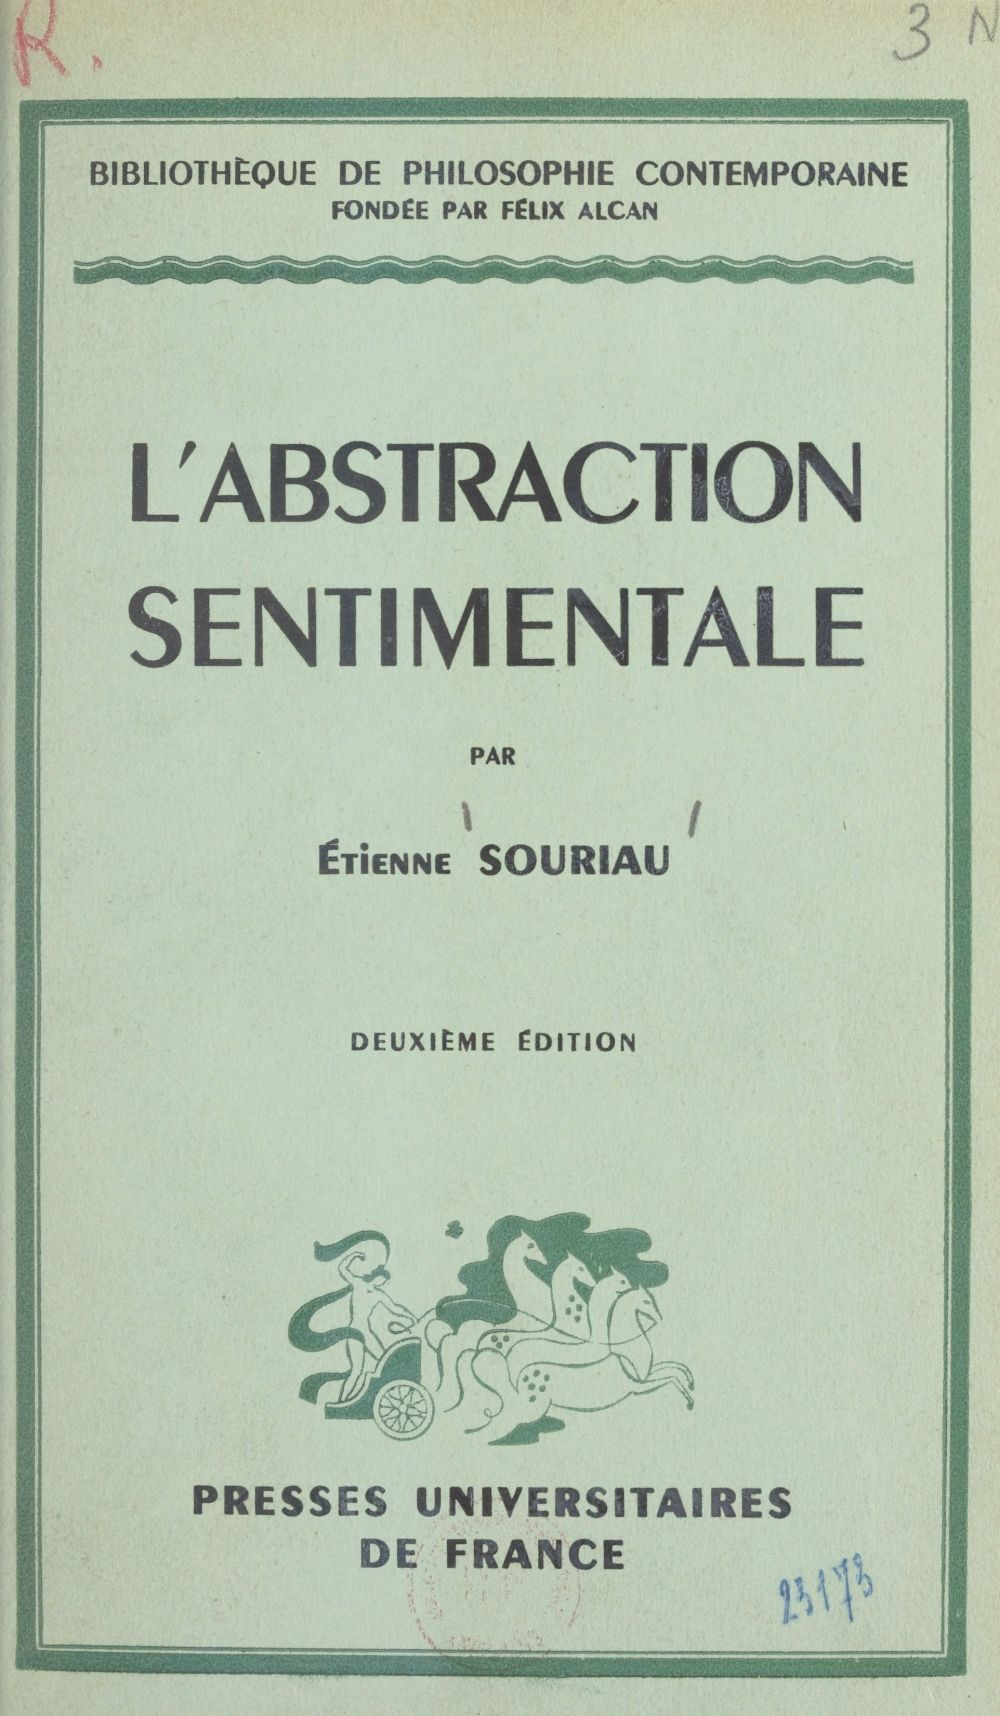 L'abstraction sentimentale